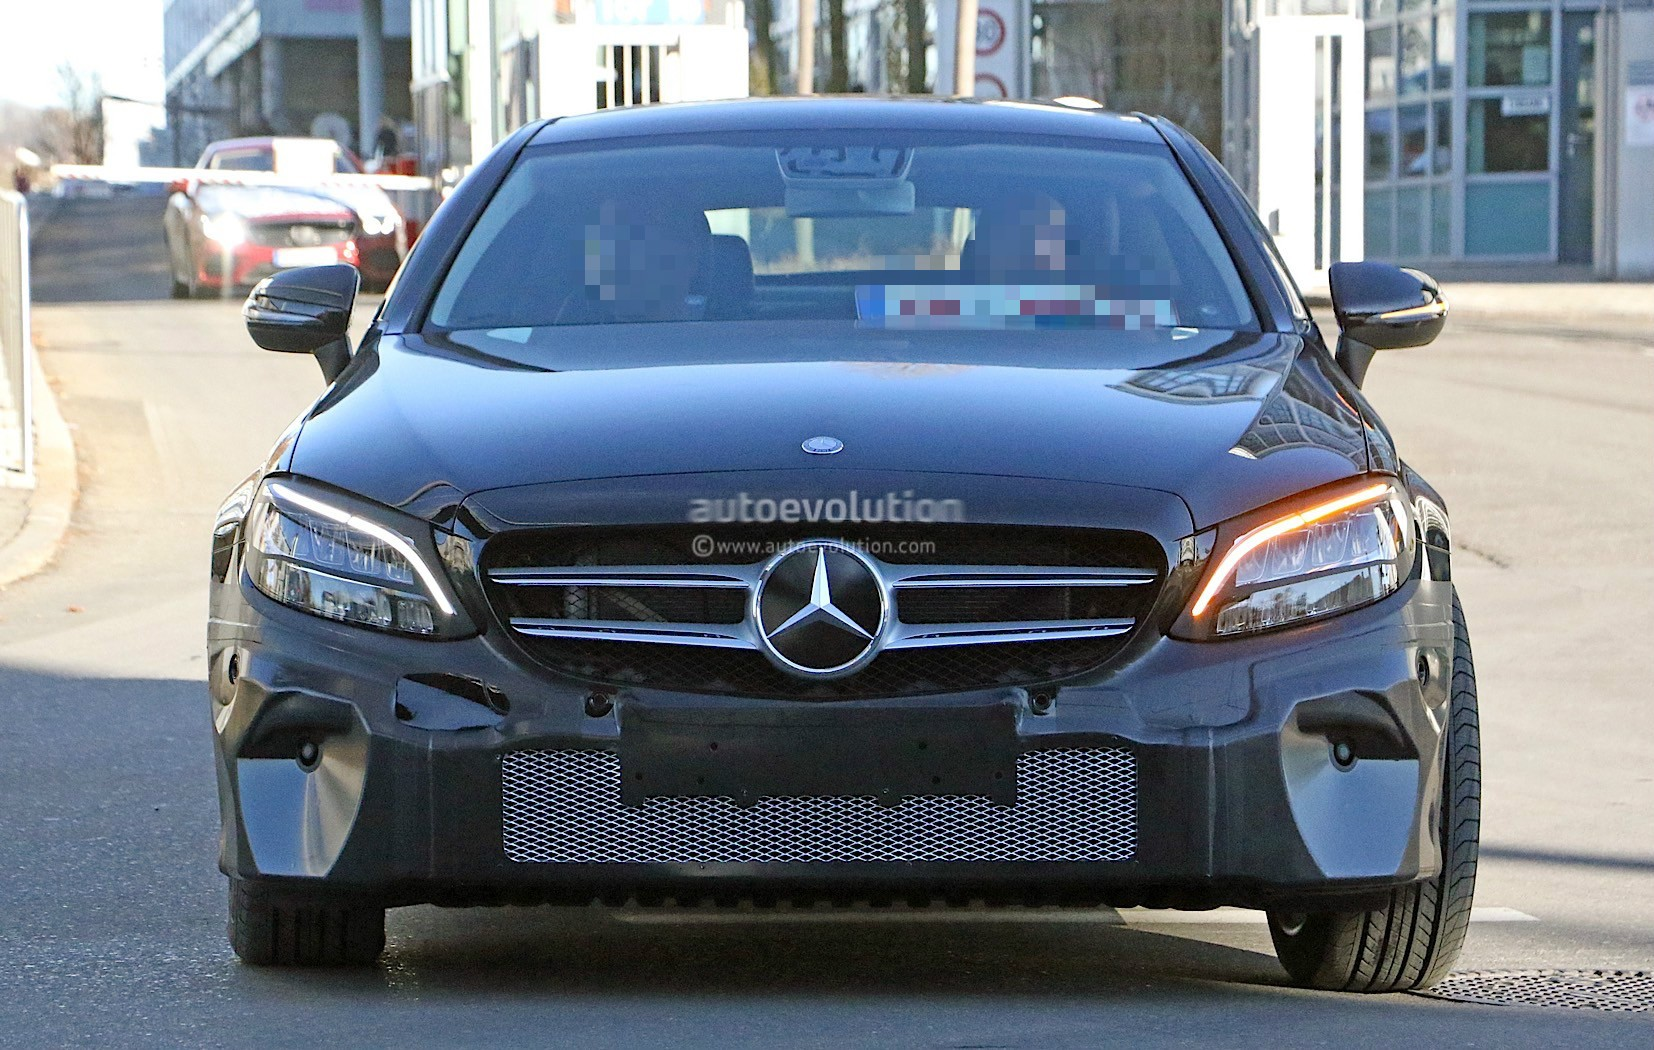 2019 Mercedes-Benz C-Class Coupe Facelift Shows All-New LED